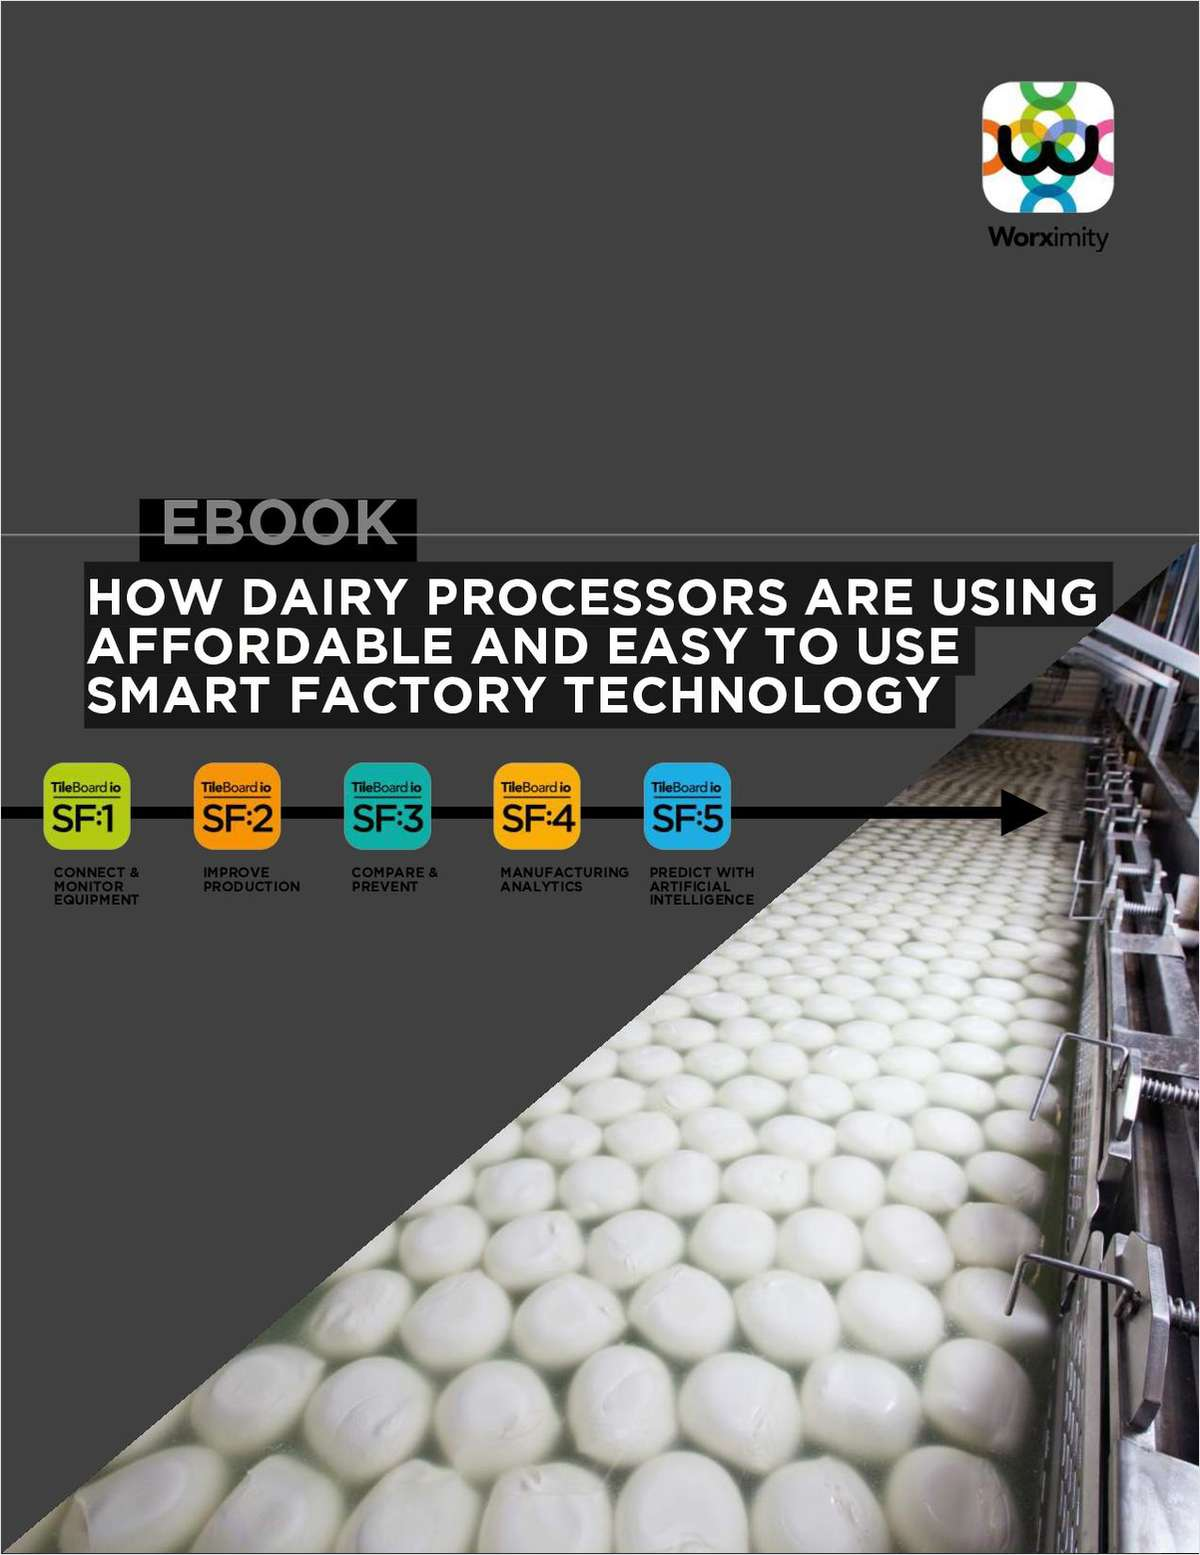 How Dairy Processors Are Using Affordable and Easy to Use Smart Factory Technology